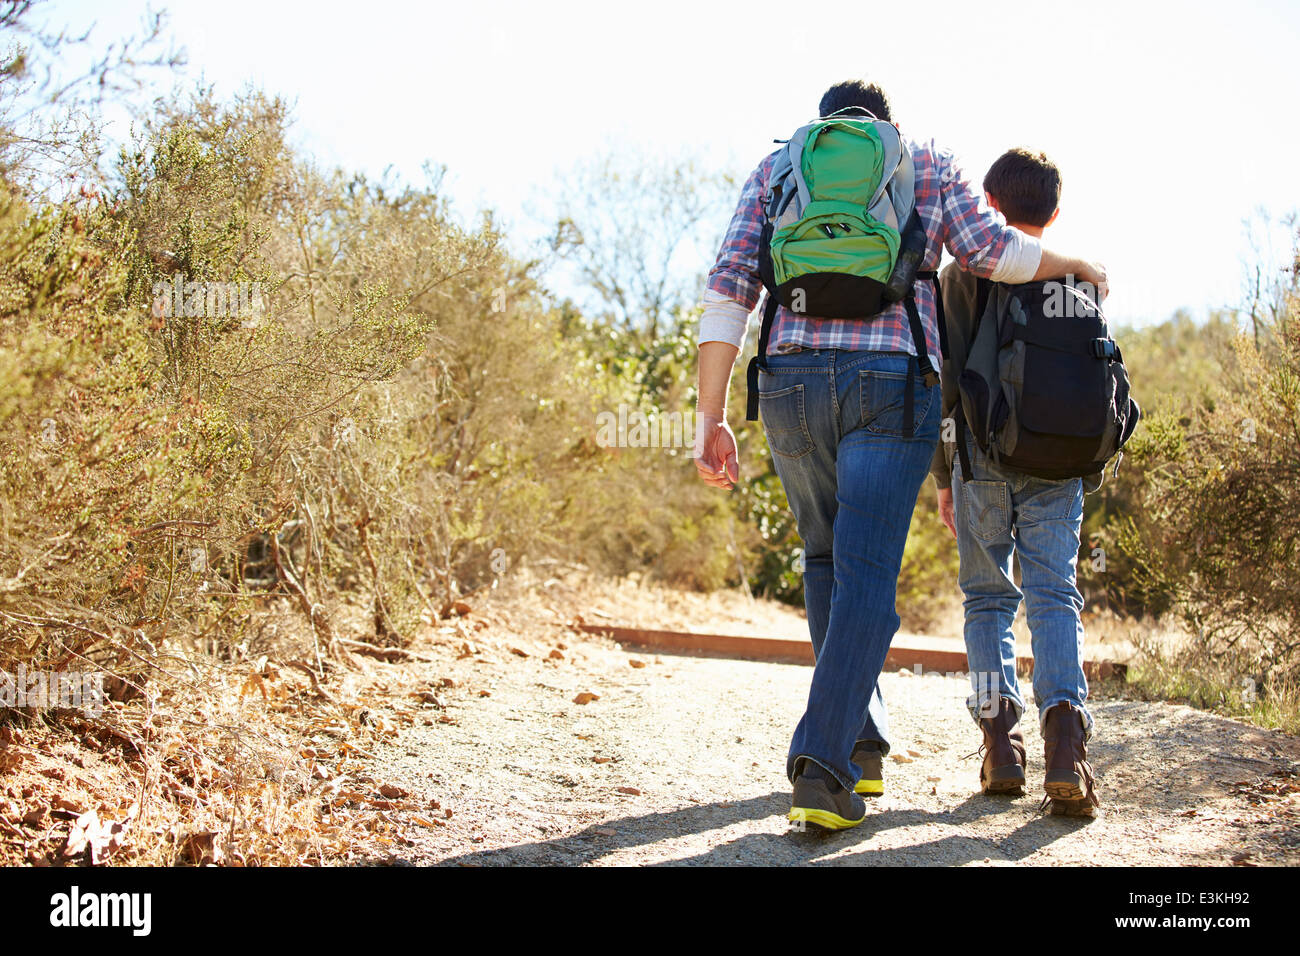 Rear View Of Father And Son Hiking In Countryside - Stock Image